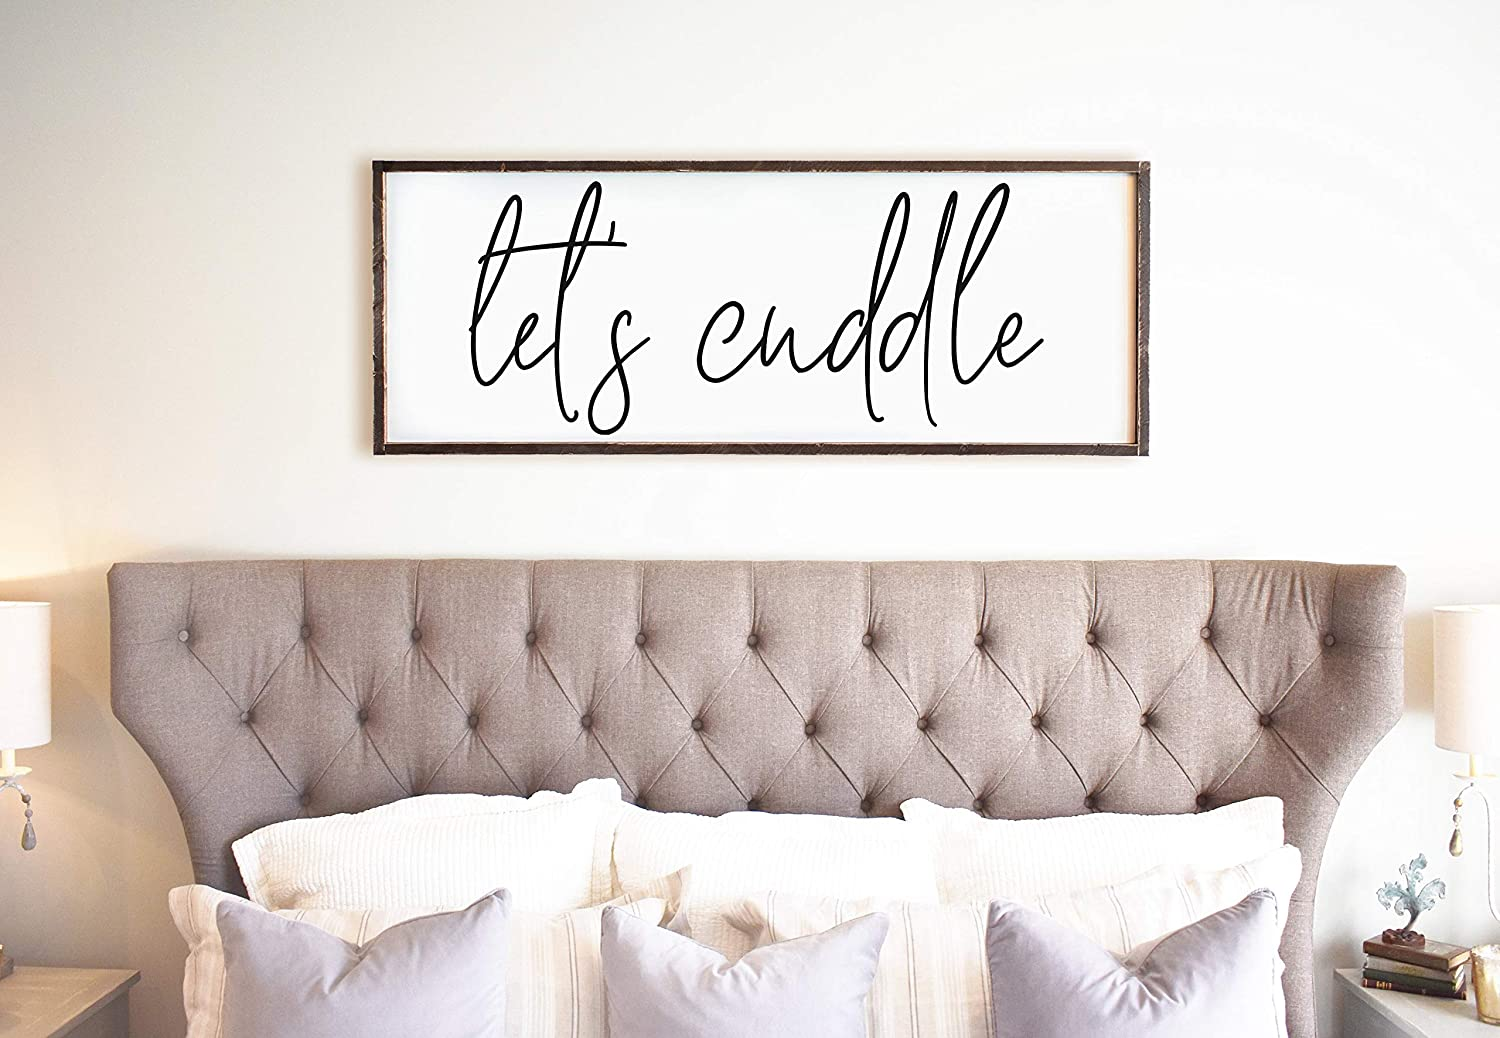 CELYCASY for Her Let's Cuddle Wedding Gift Living Room Wall Decor Modern Farmhouse Decor Let's Snuggle Over The Bed